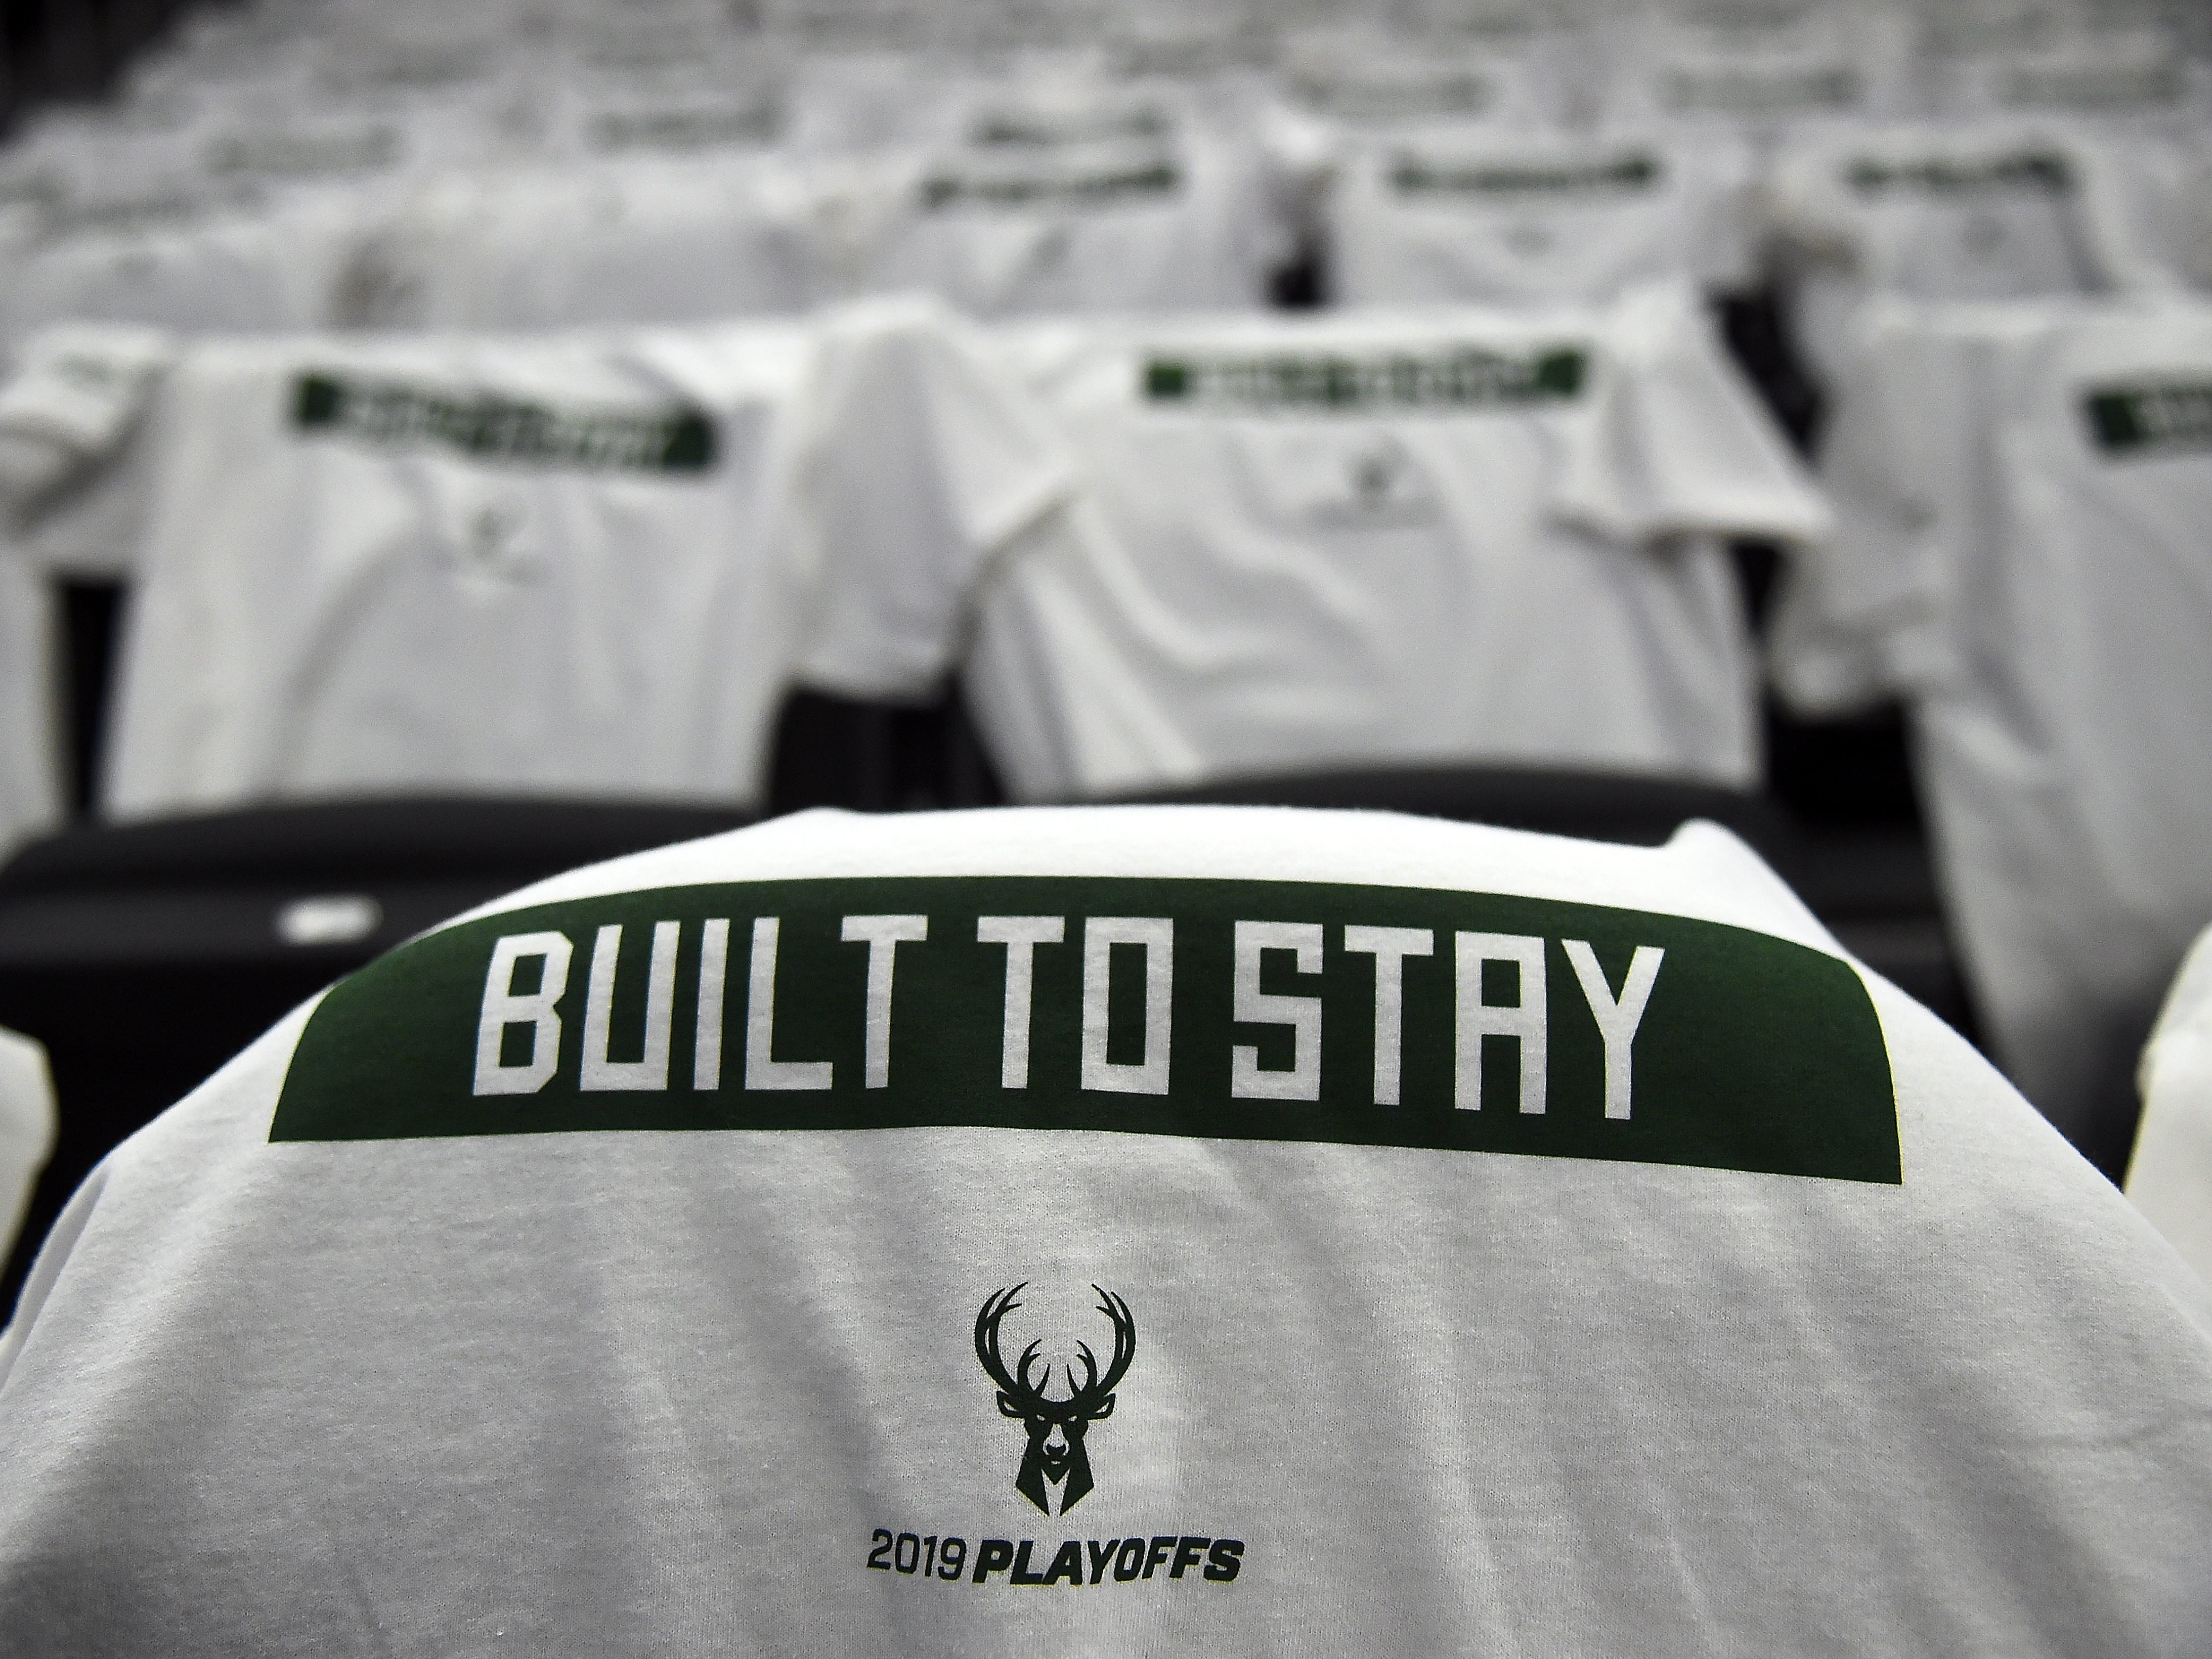 A detailed view of T-shirts on chairs prior to Game 1 of the playoffs between the Milwaukee Bucks and the Detroit Pistons at Fiserv Forum on April 14, 2019 in Milwaukee, Wisc.